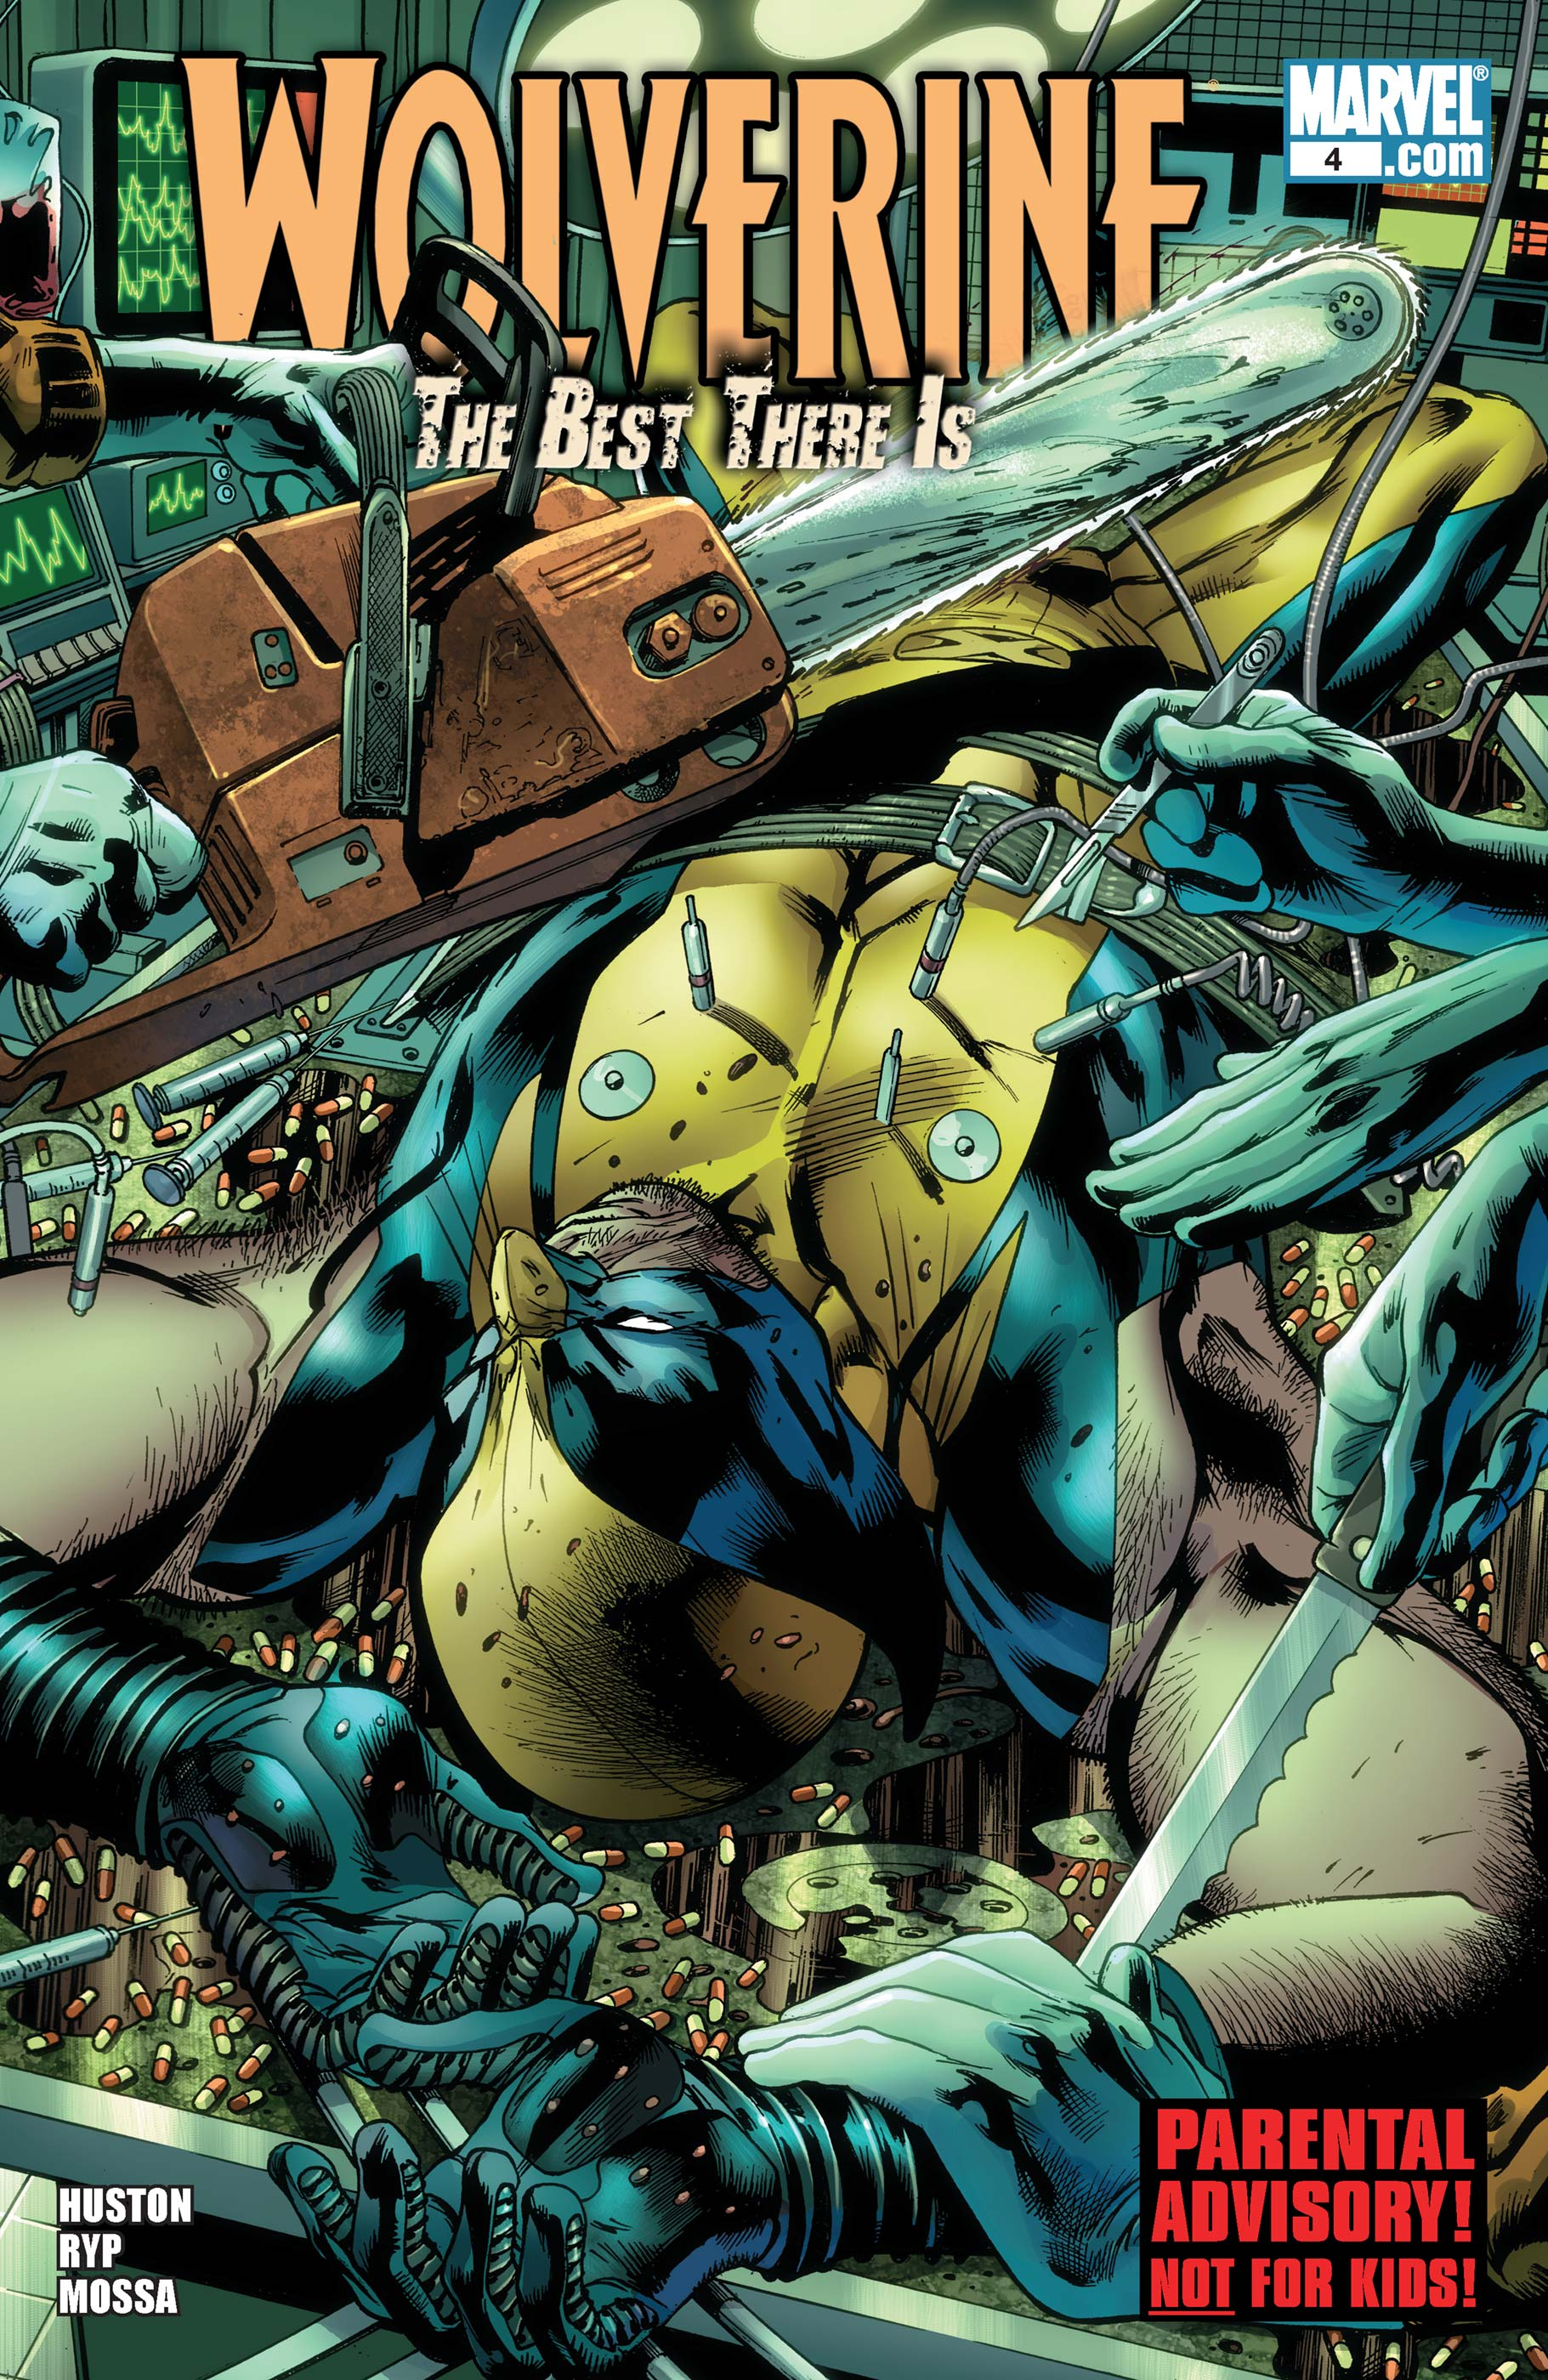 Wolverine: The Best There Is (2010) #4